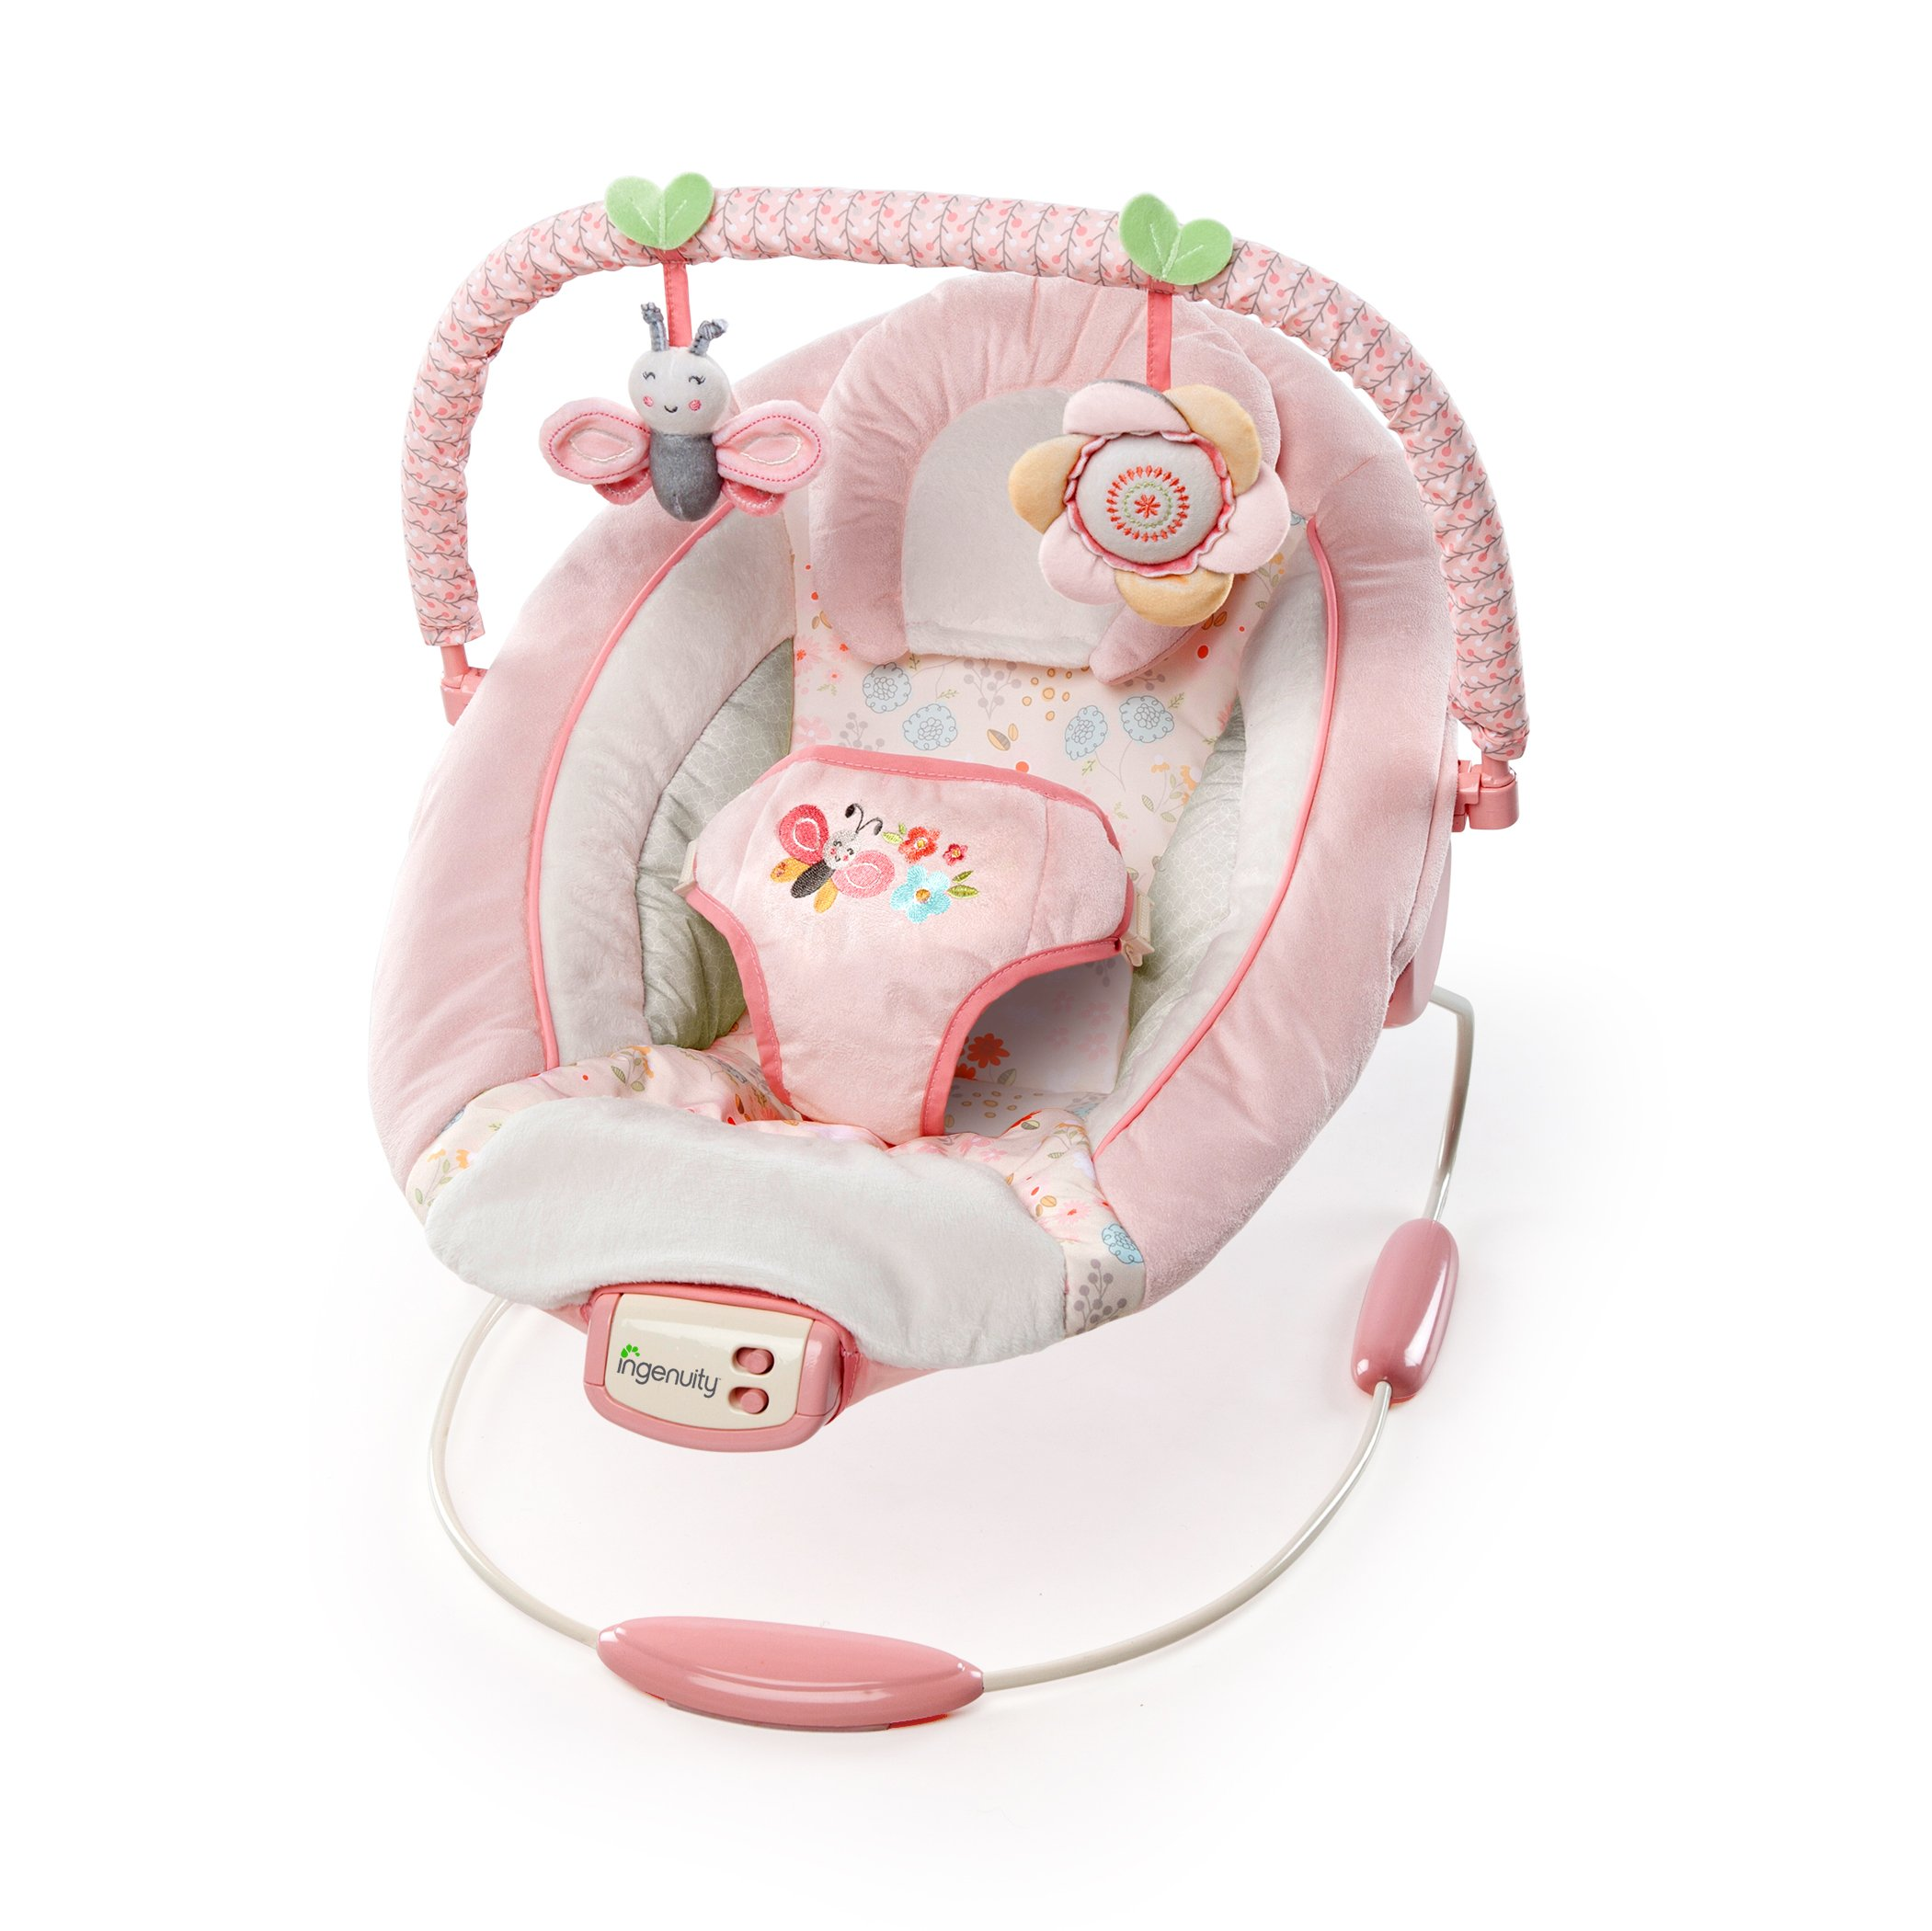 Ingenuity Cradling Vibrating Baby Bouncer With Melodies In